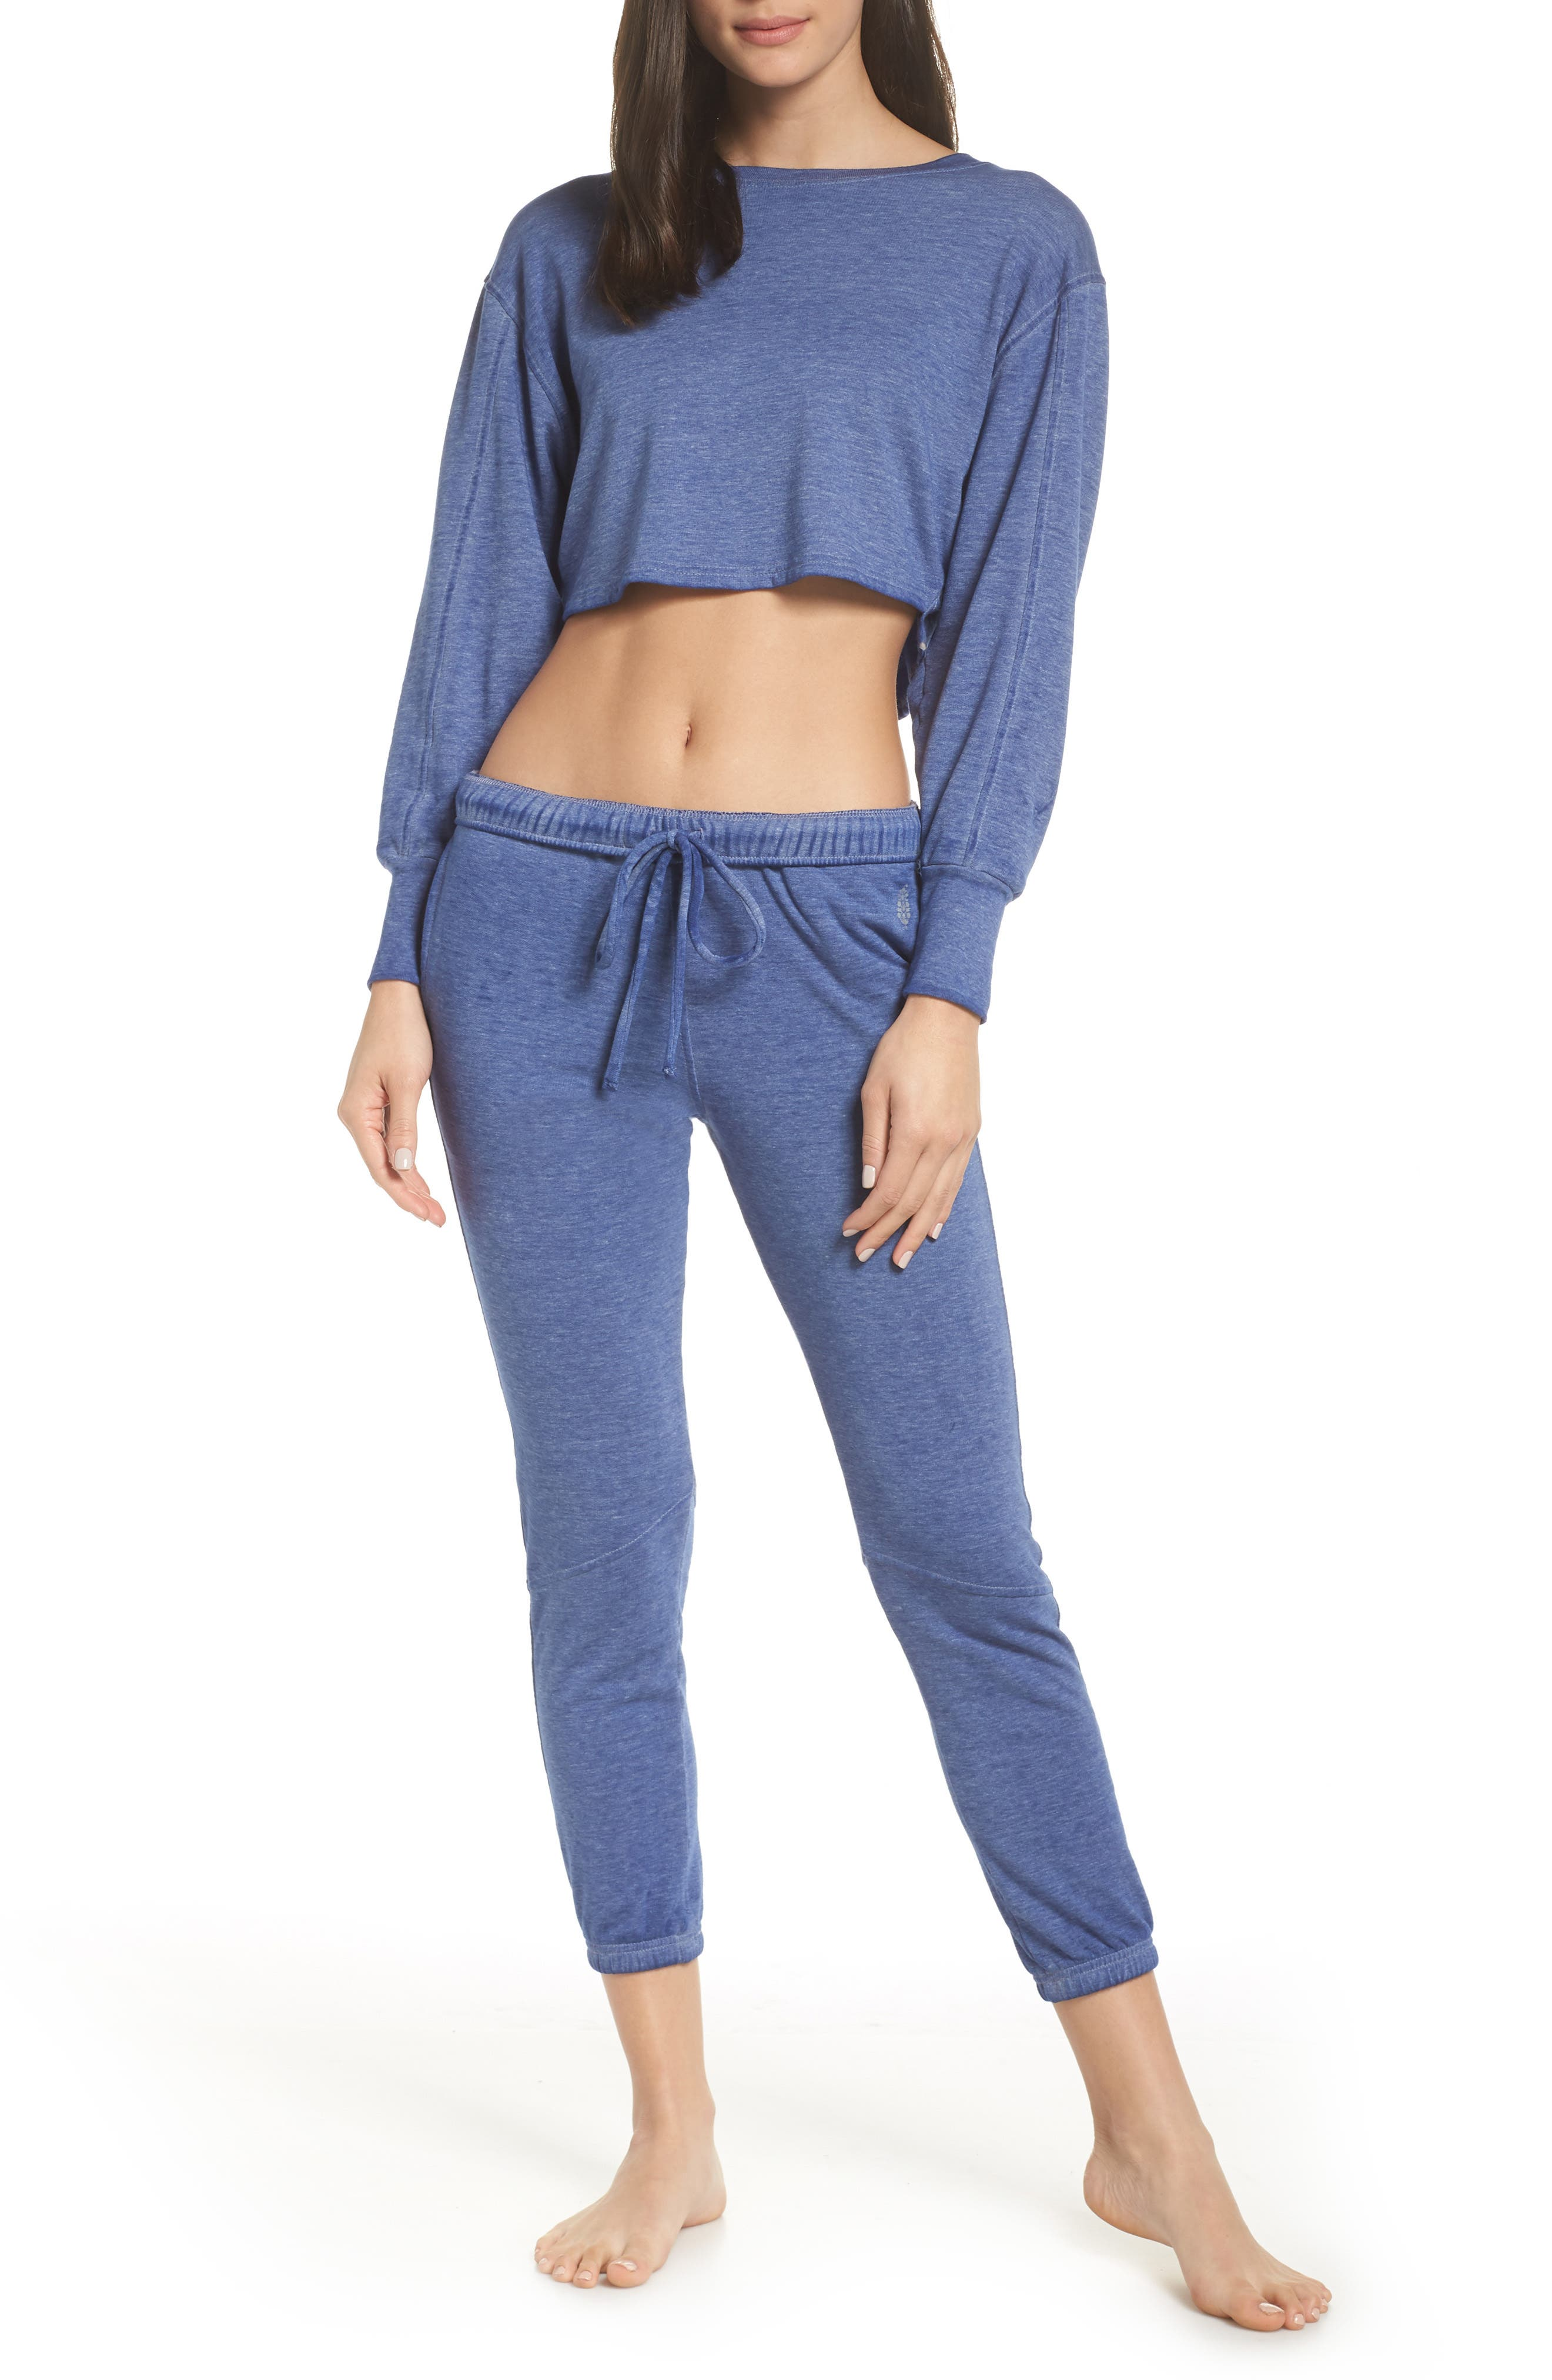 Free People FP Movement Zuma Crop Jogger Pants,                             Alternate thumbnail 8, color,                             BLUE